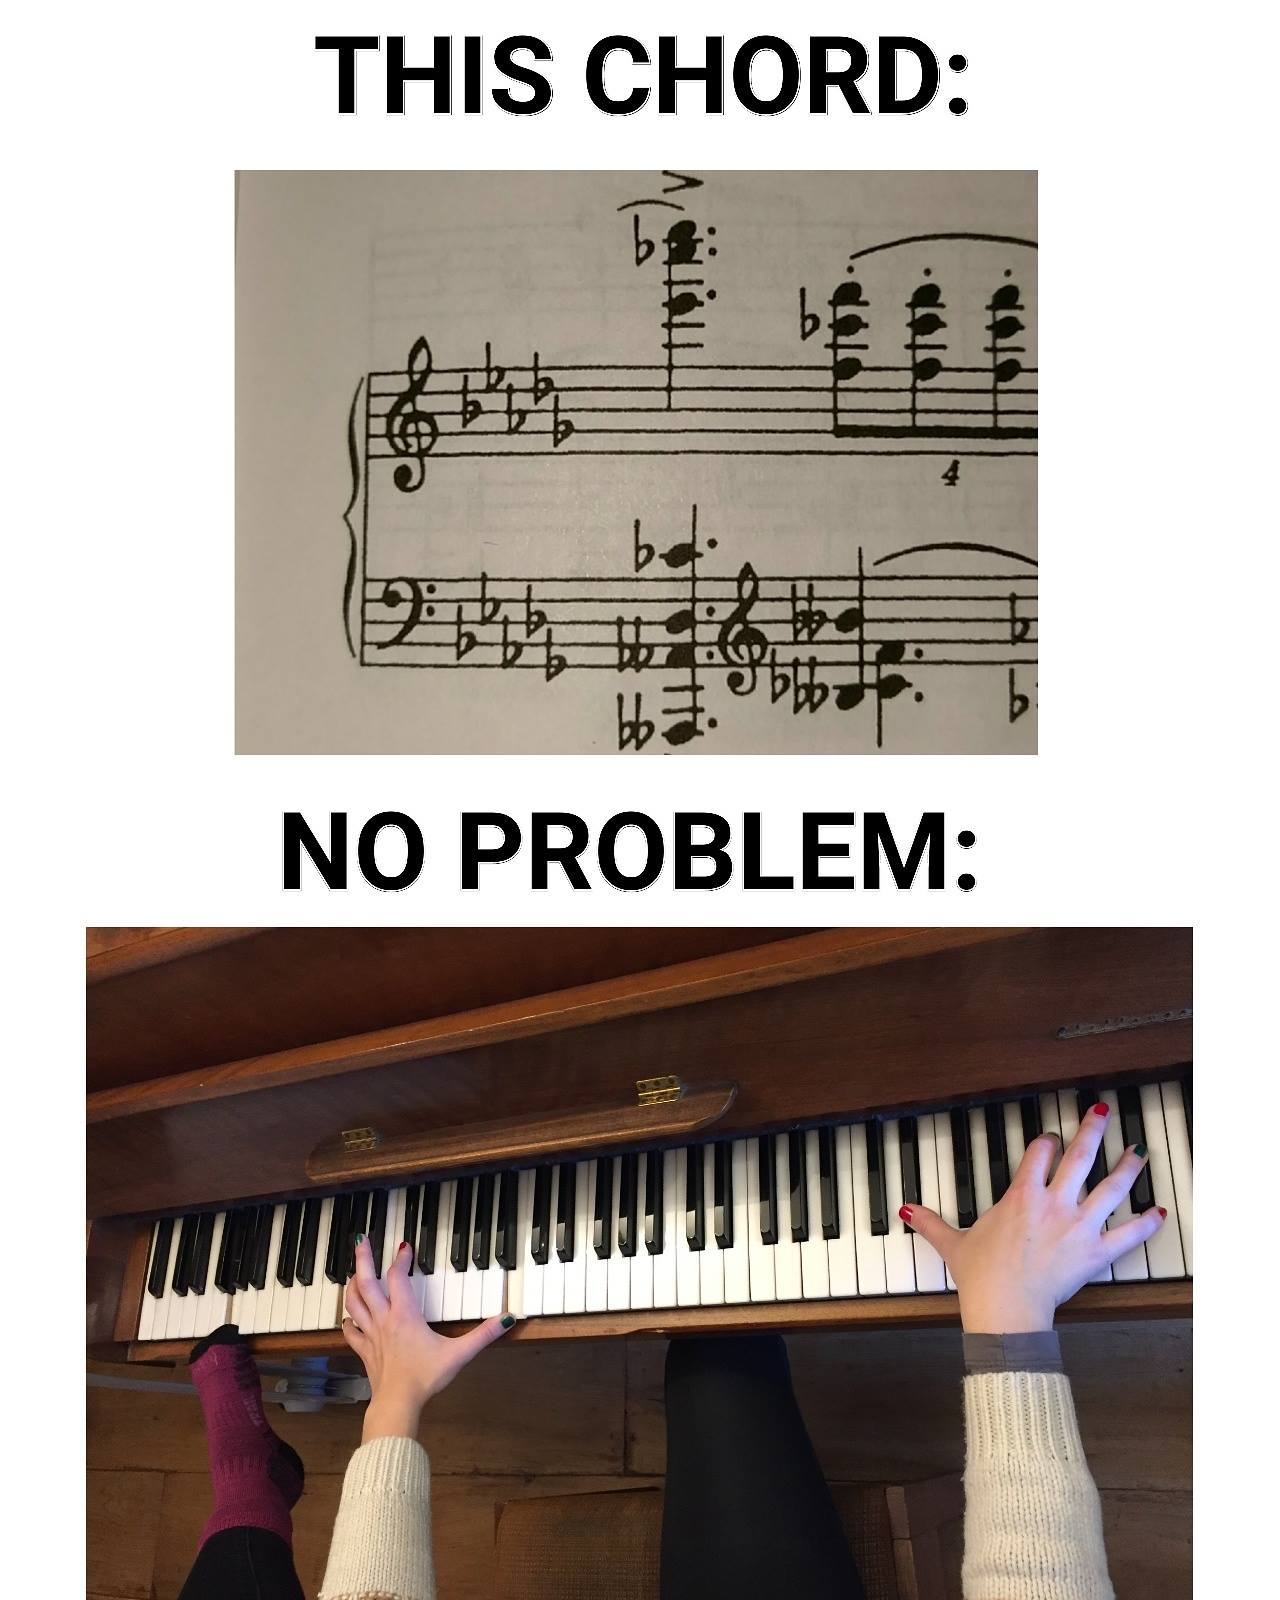 memes music classical meme chord foot got classic humour chuckle involved sometimes whole ve body